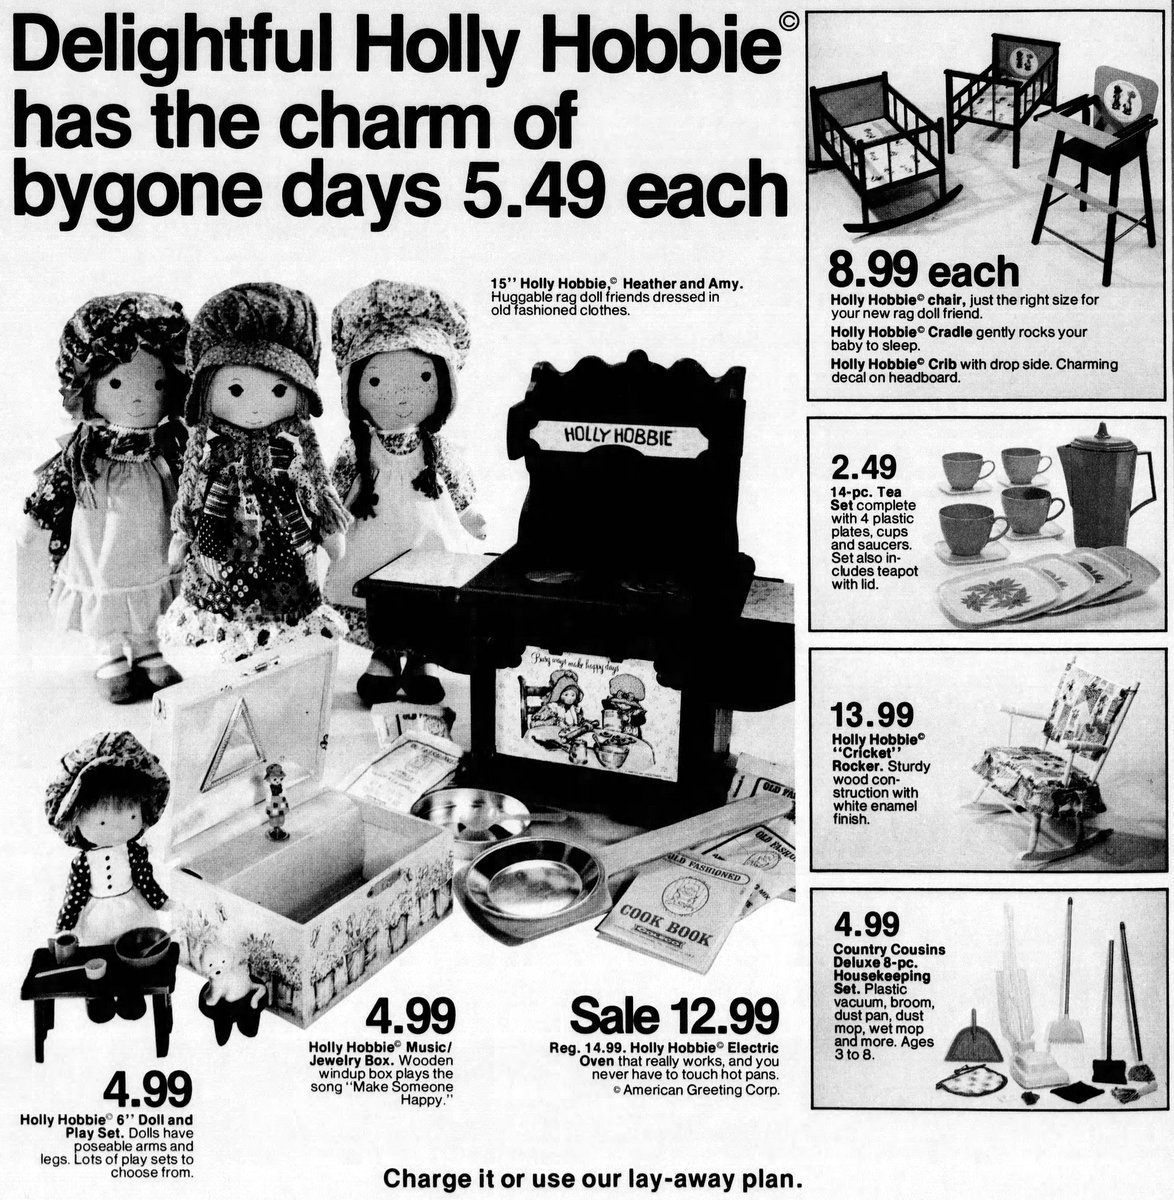 Delightful Holly Hobbie dolls and dollhouse (1976)